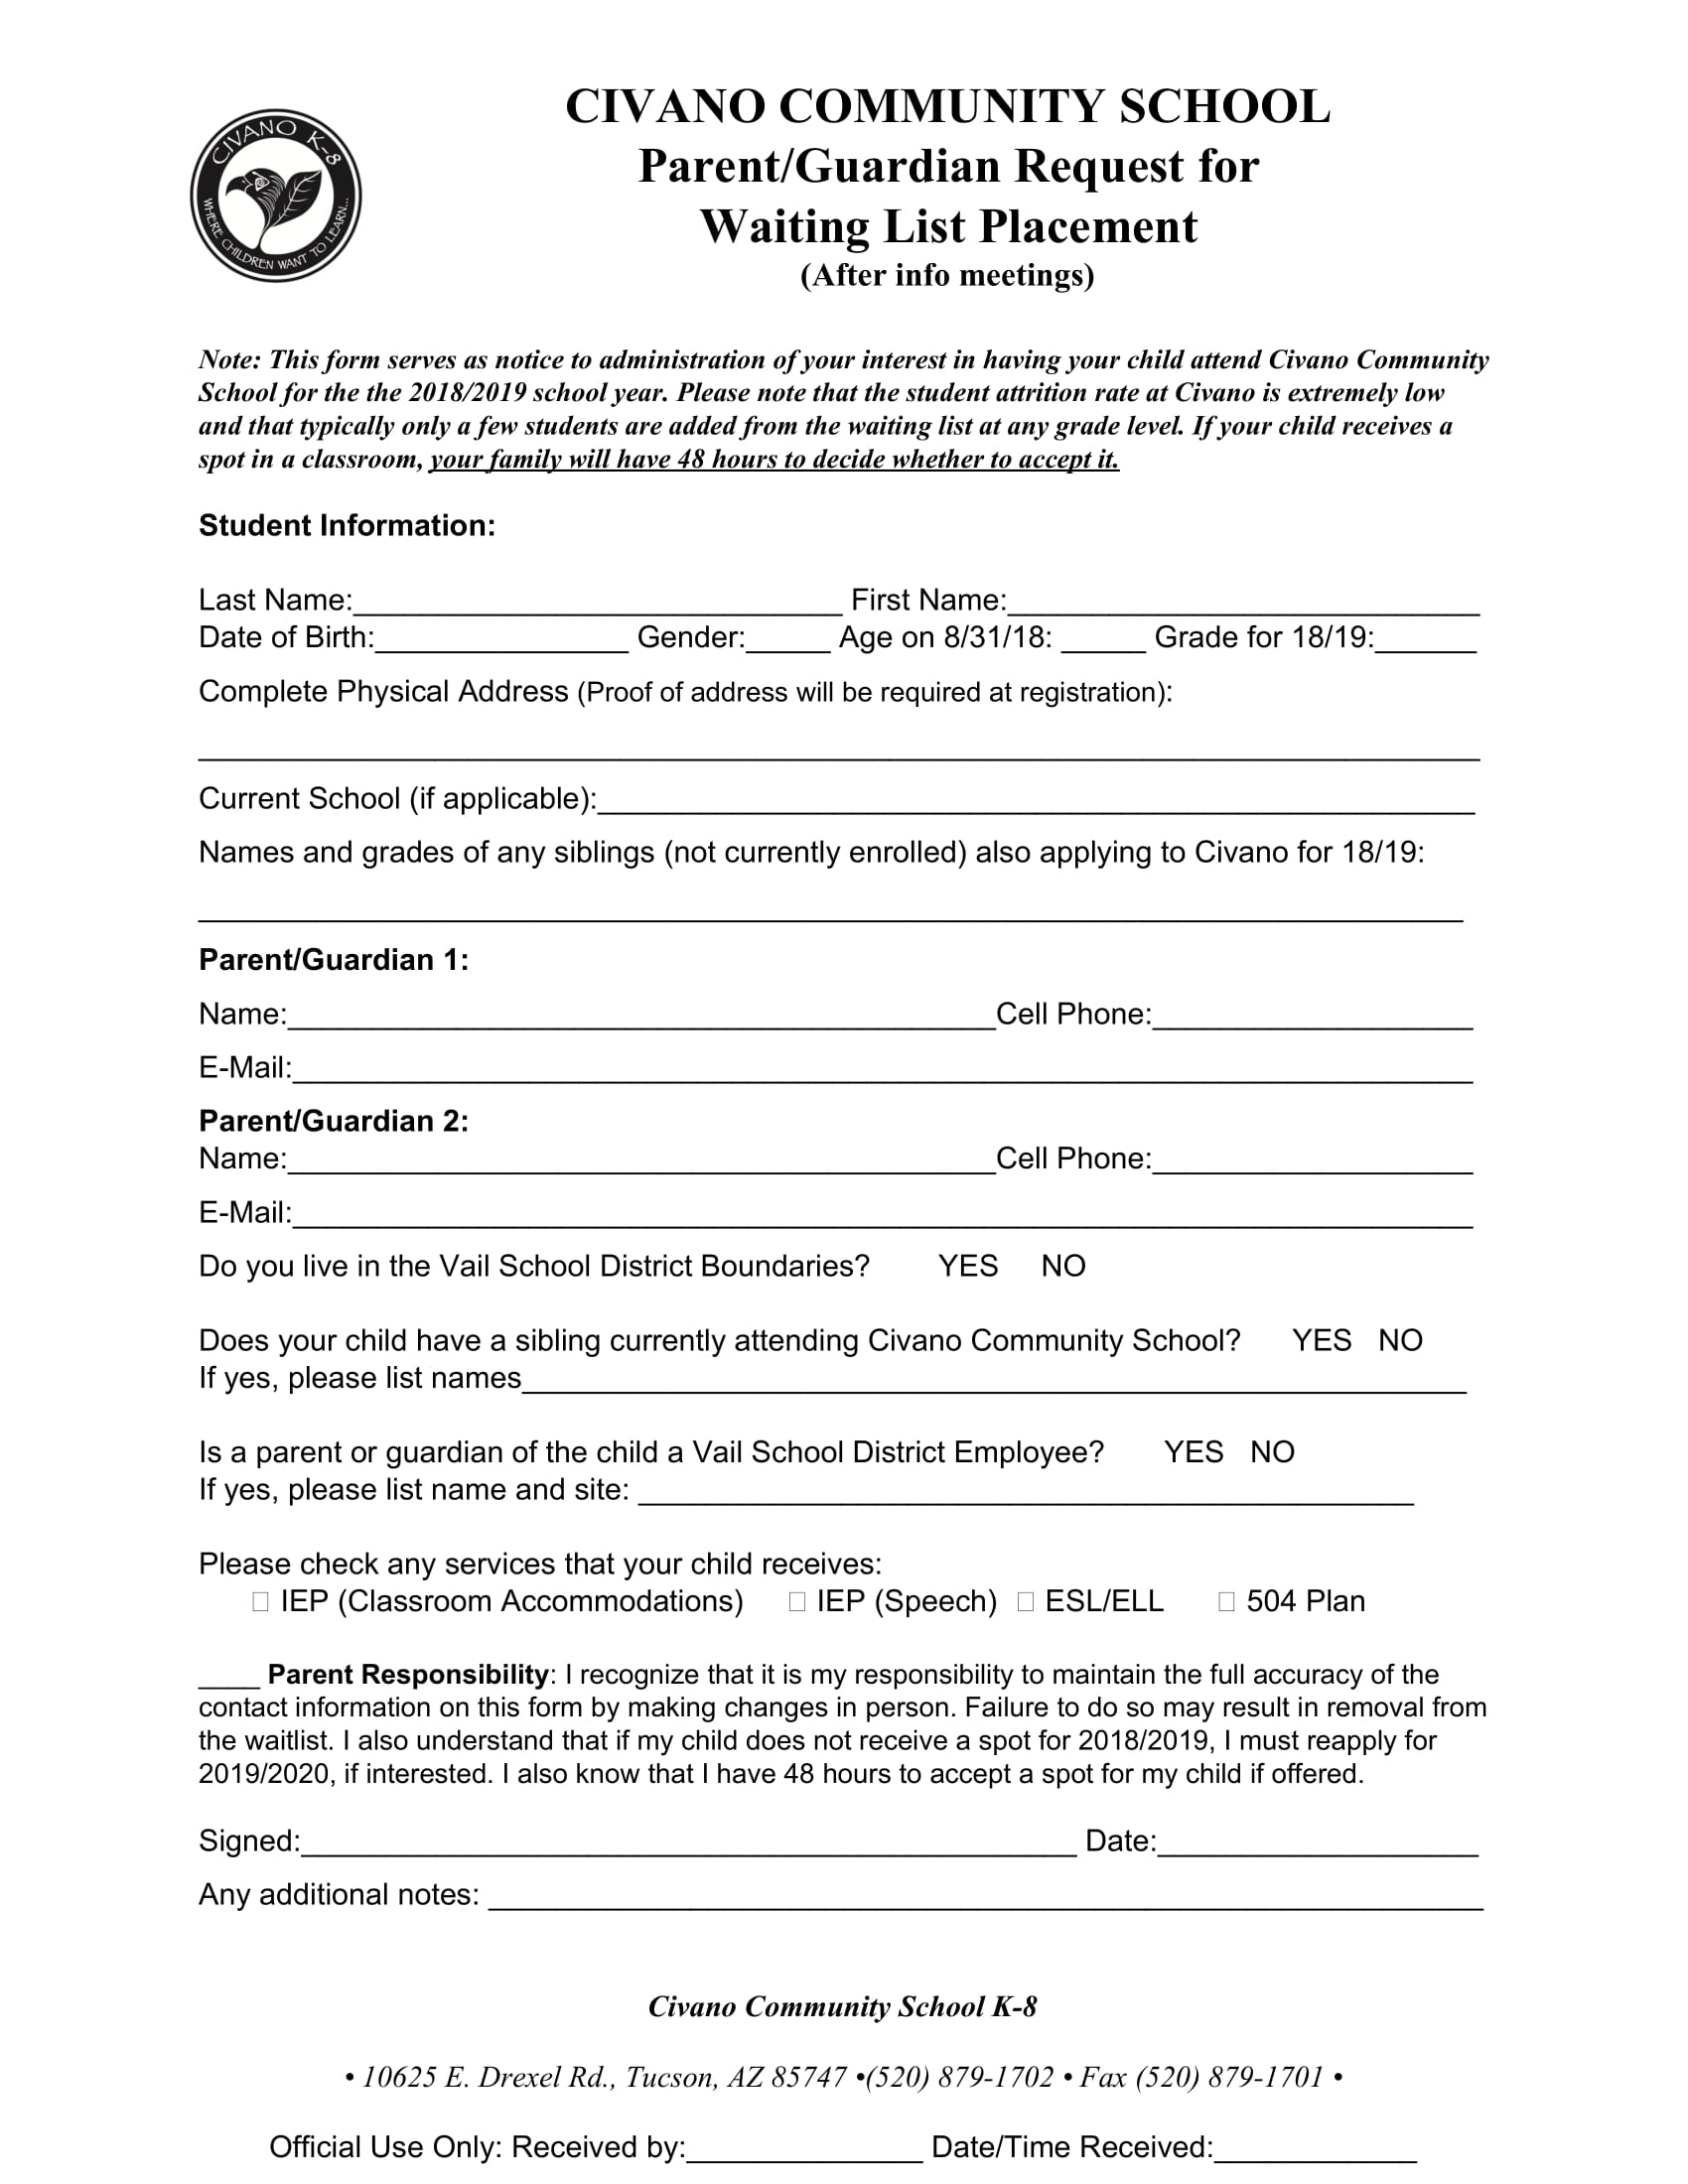 community school waiting list request form 1